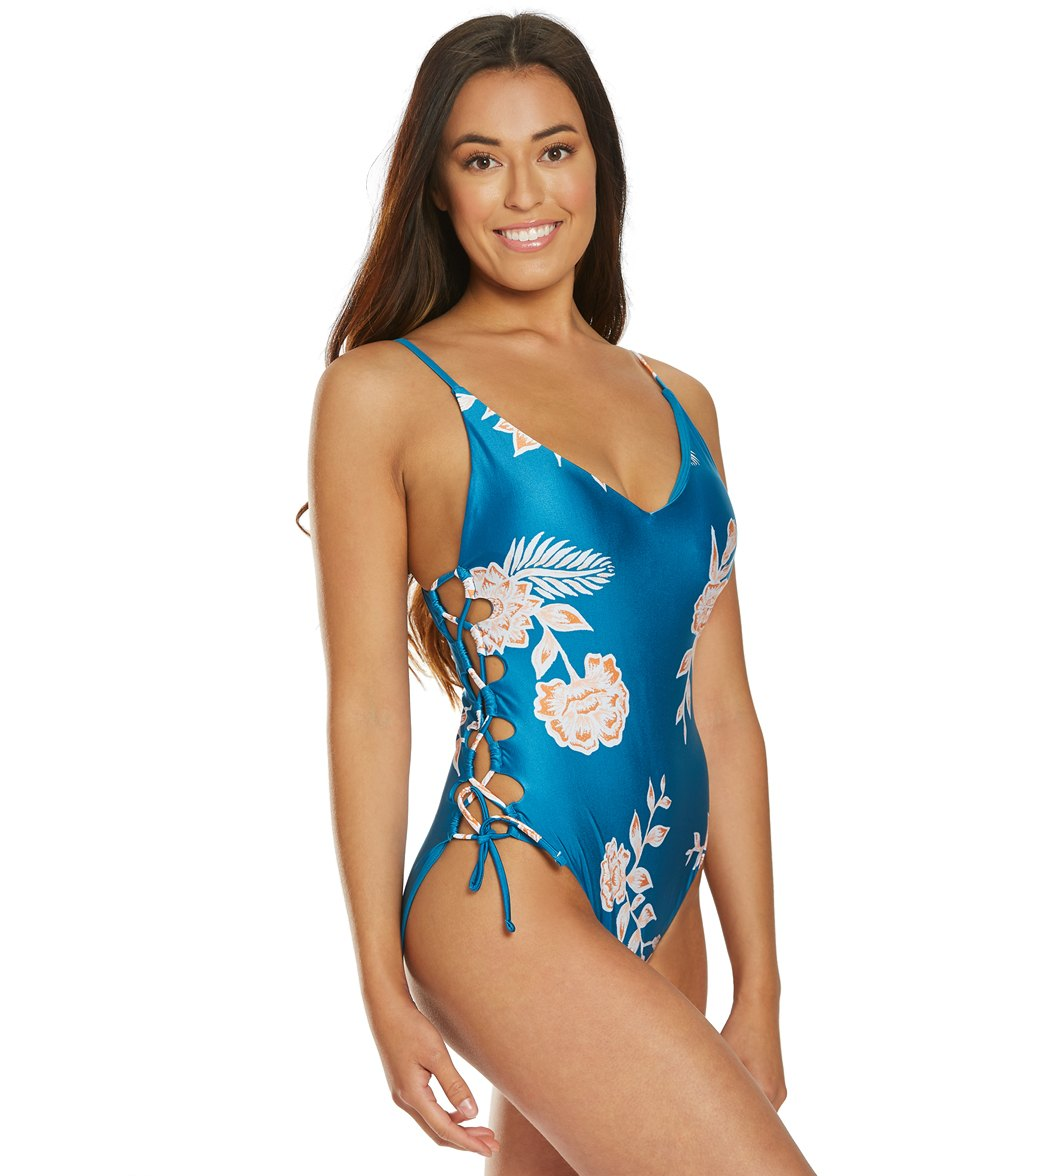 c695a1ee6e5 Roxy Riding Moon One Piece Swimsuit